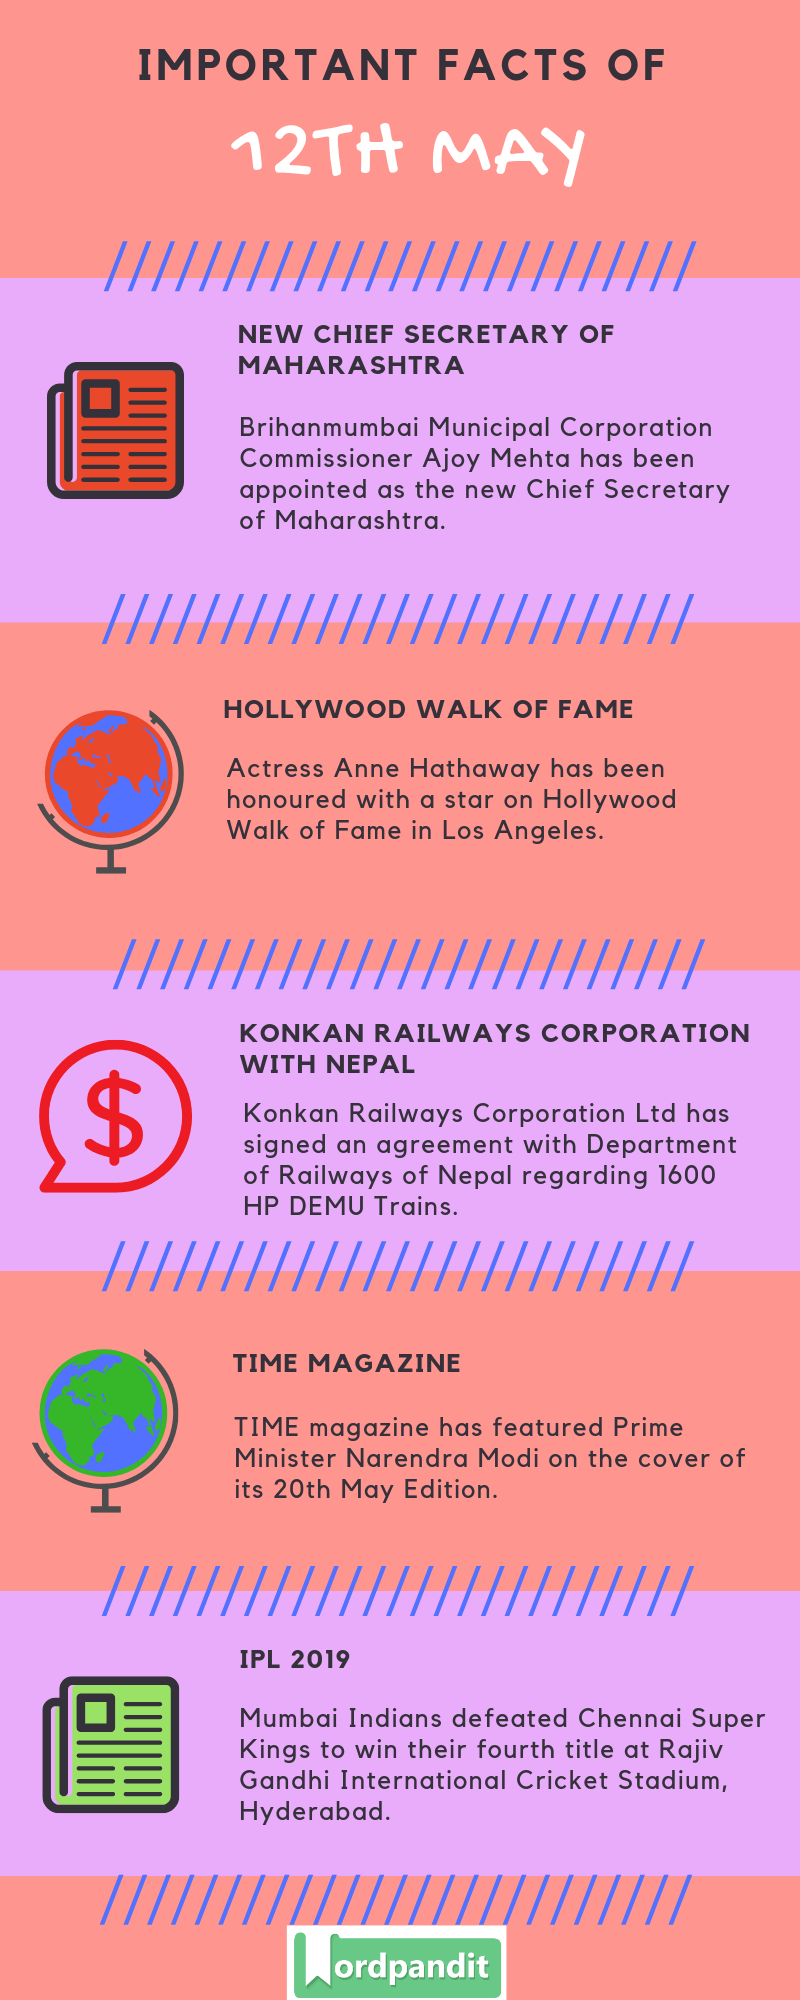 Daily Current Affairs 12 May 2019 Current Affairs Quiz 12 May 2019 Current Affairs Infographic